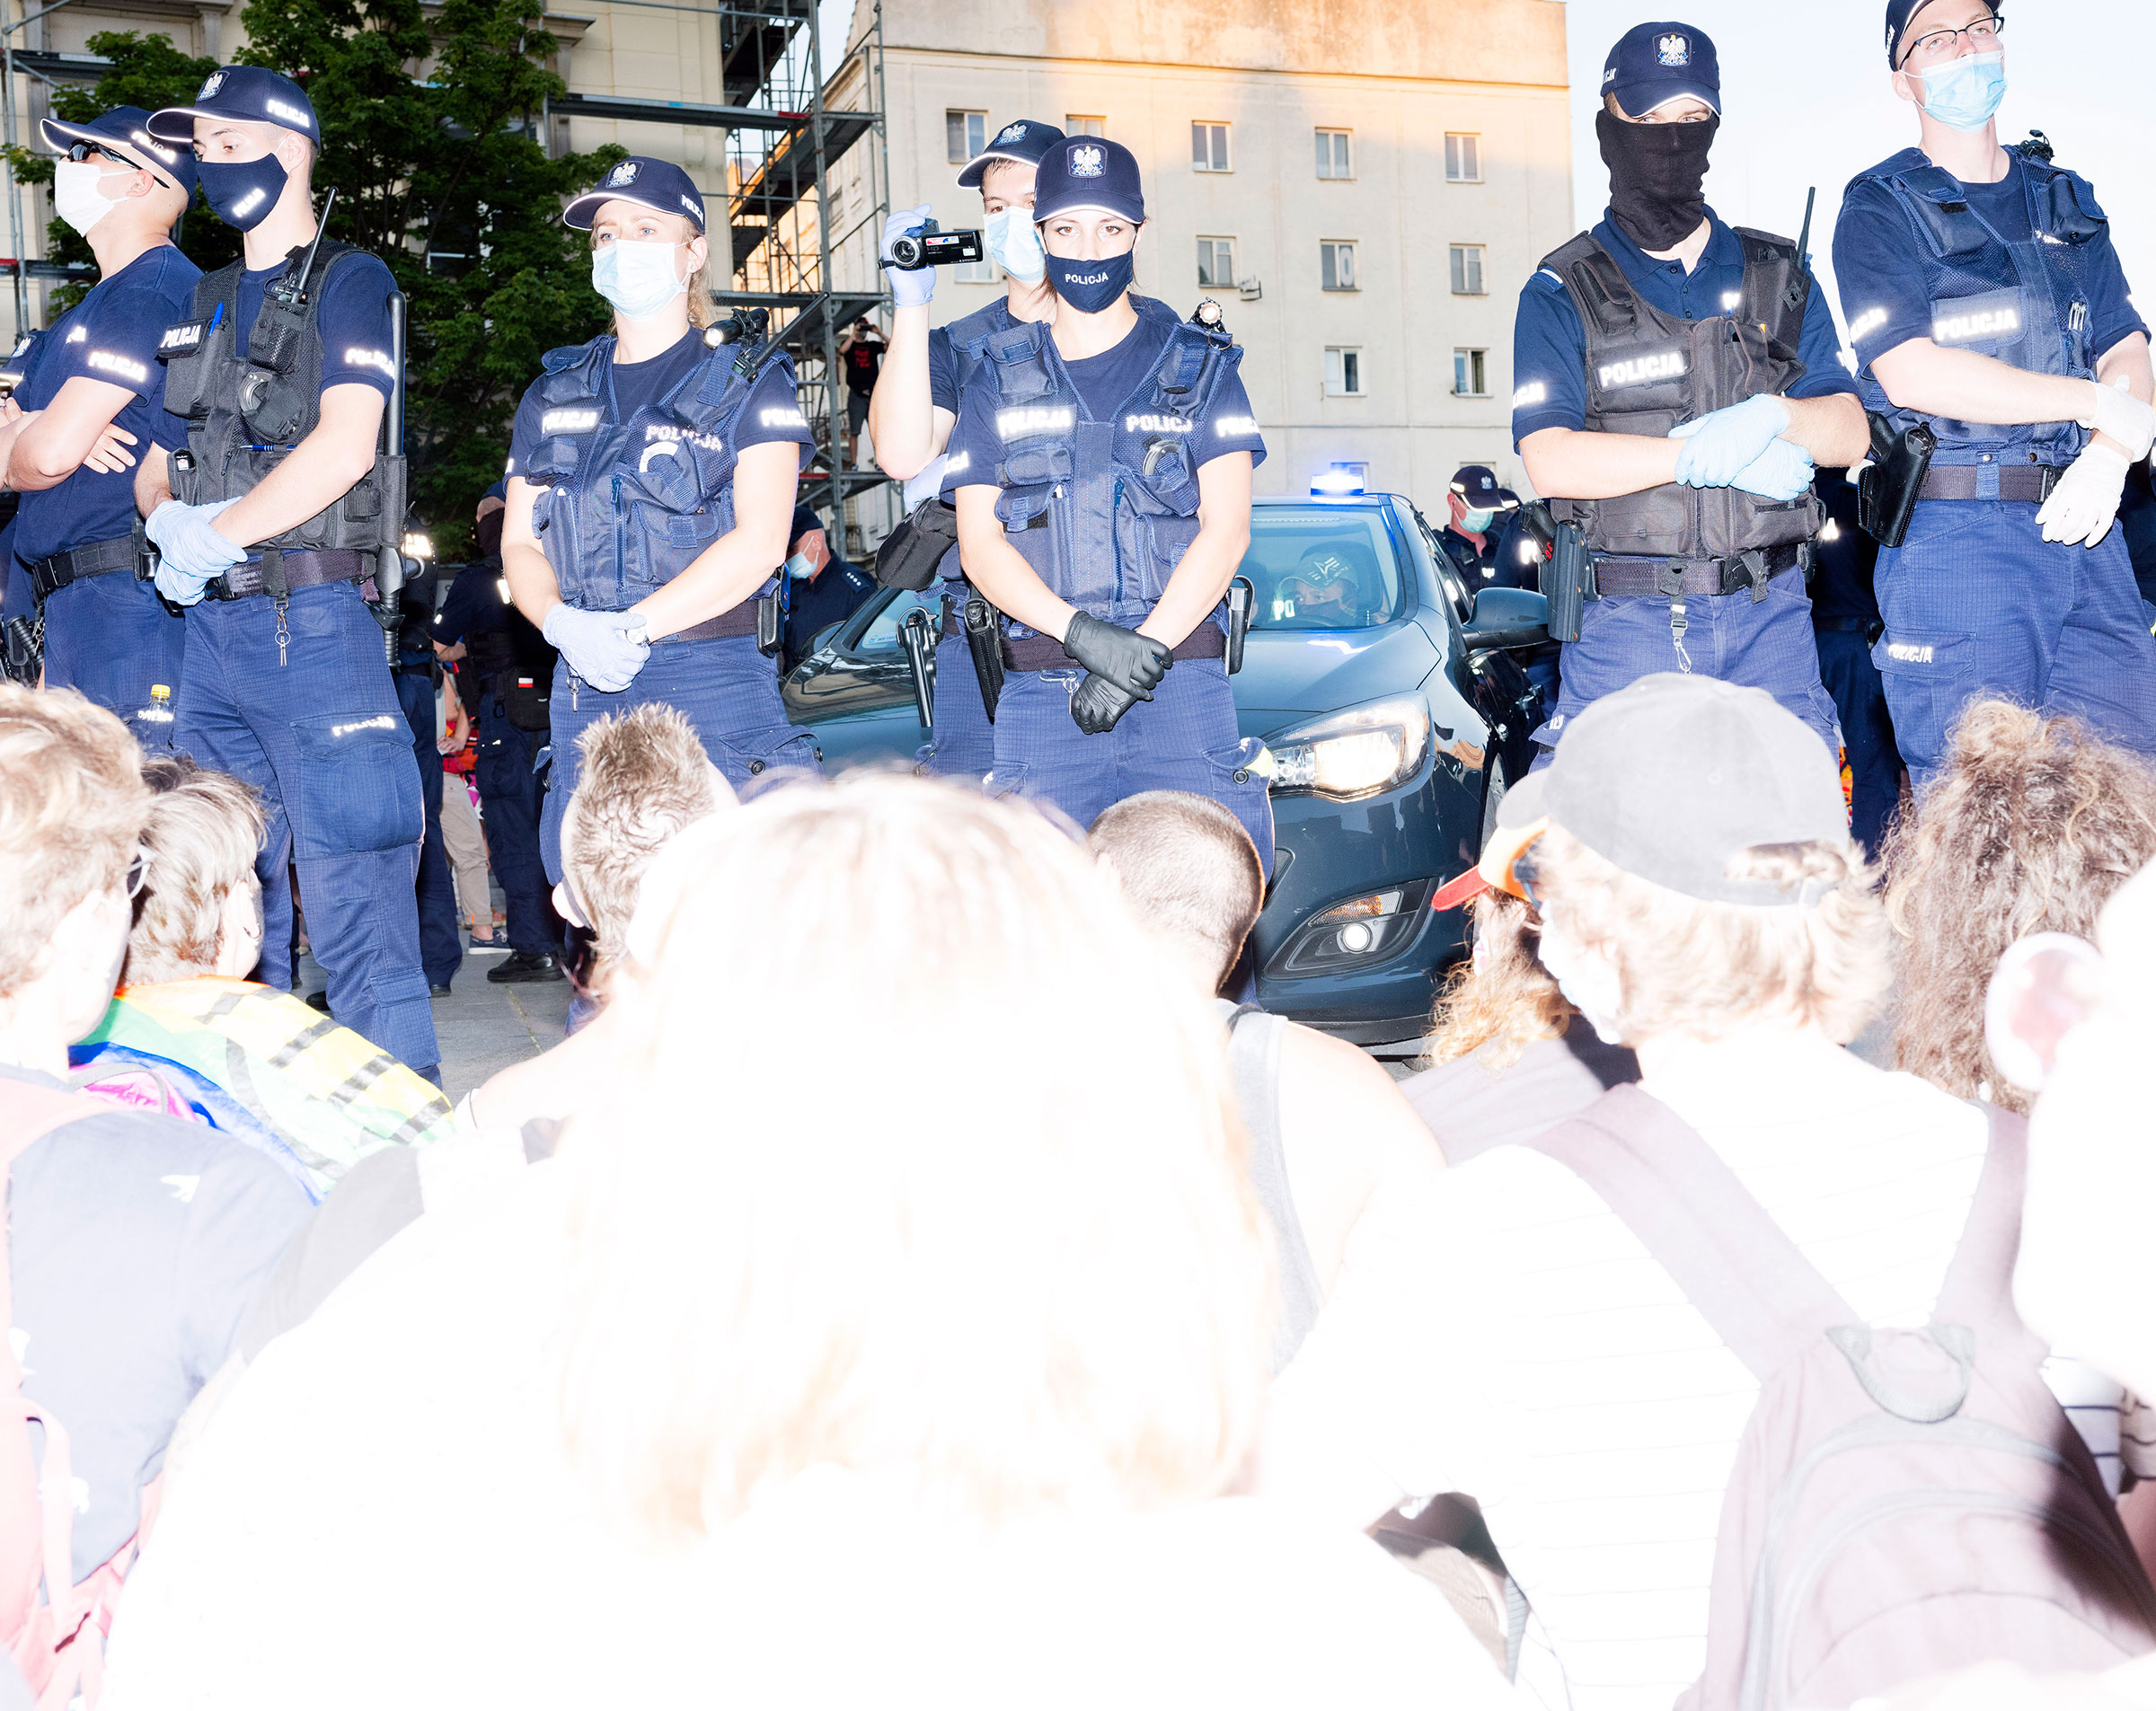 Protestors sit in front of police on in Warsaw, Poland Aug. 7, 2020.